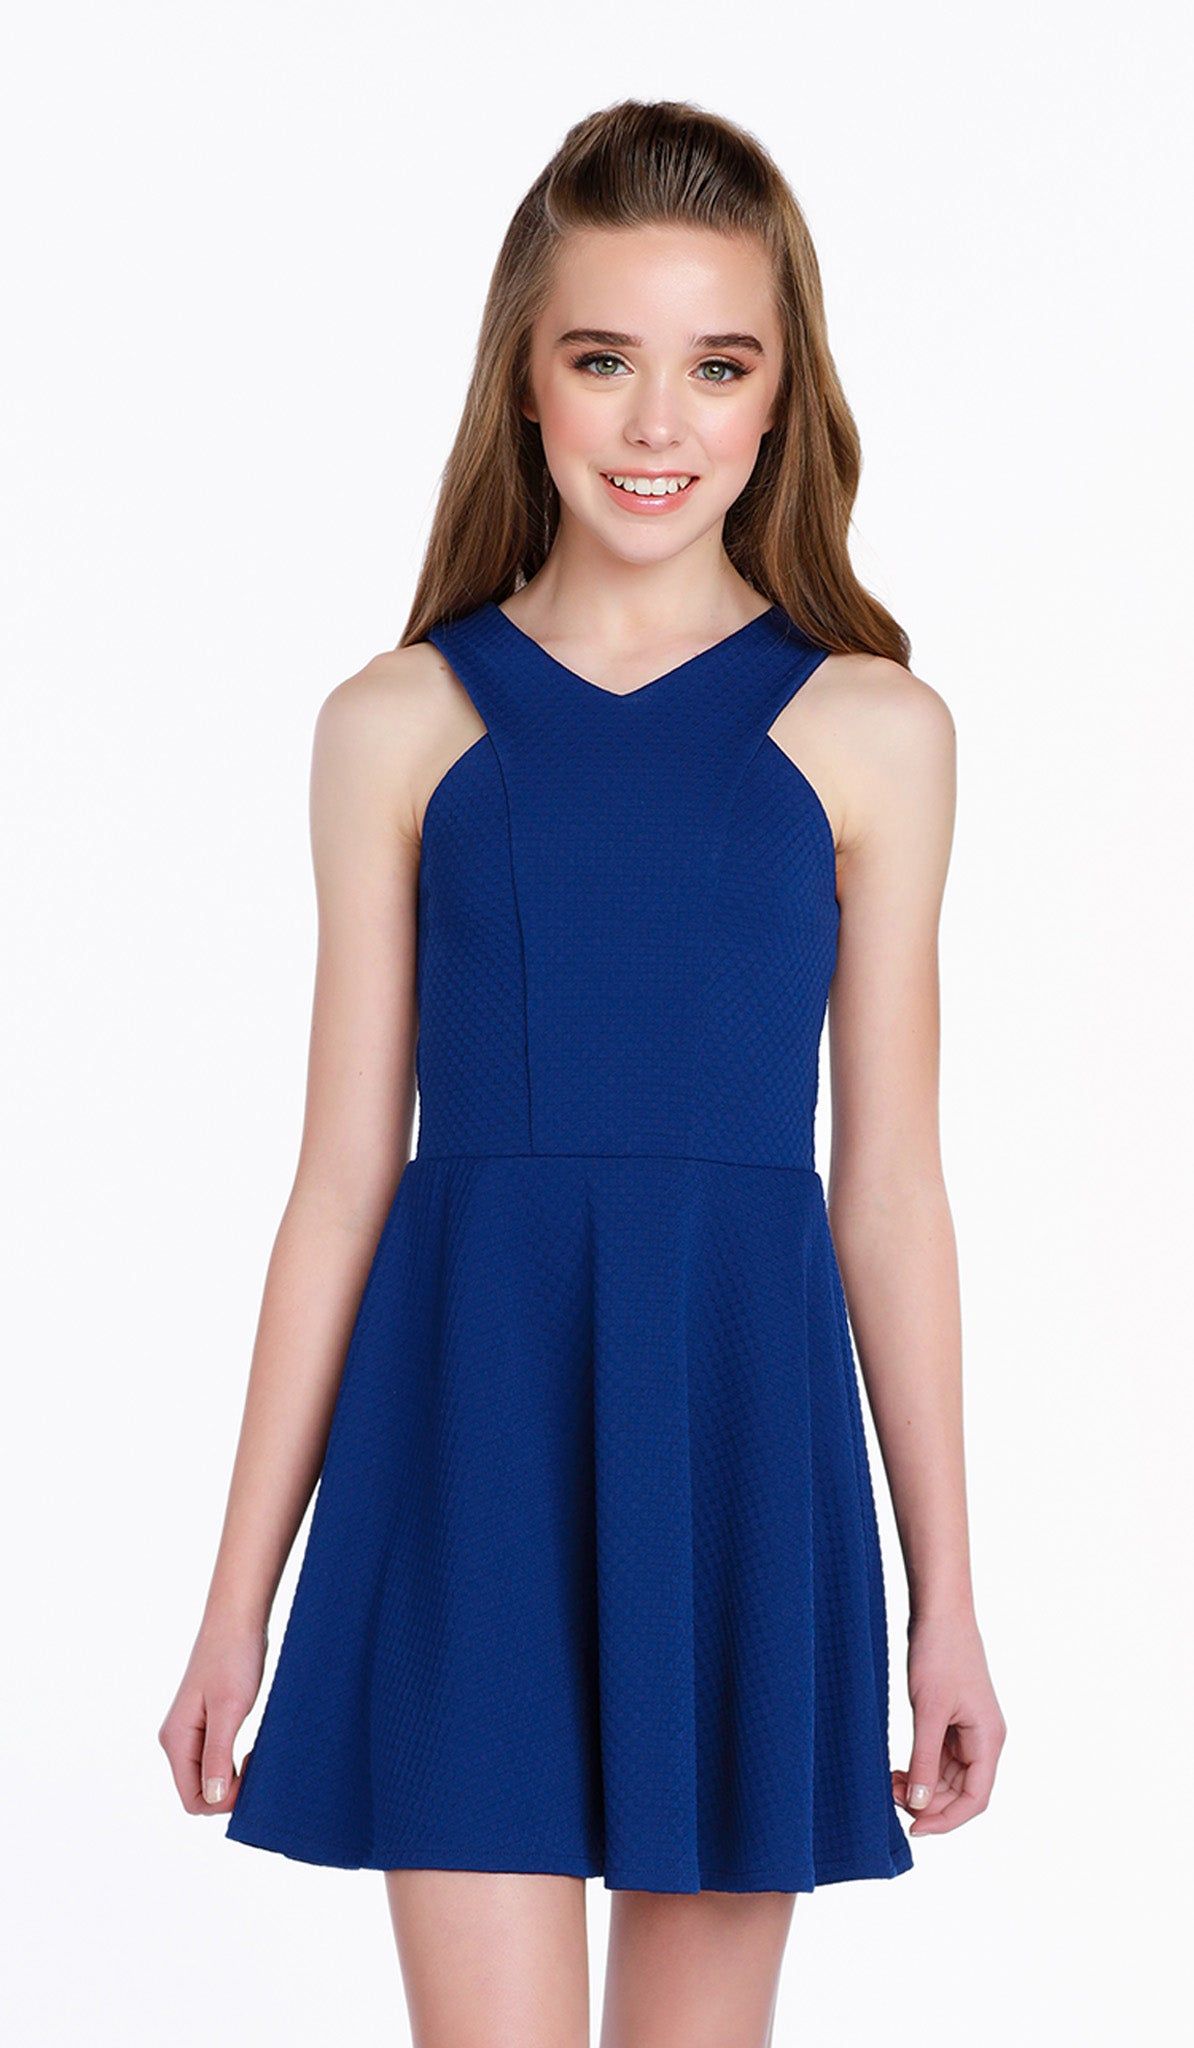 3d25789140a43 The Sally Miller Shelby Dress -Sapphire mini embossed checker texture  stretch knit fit and flare